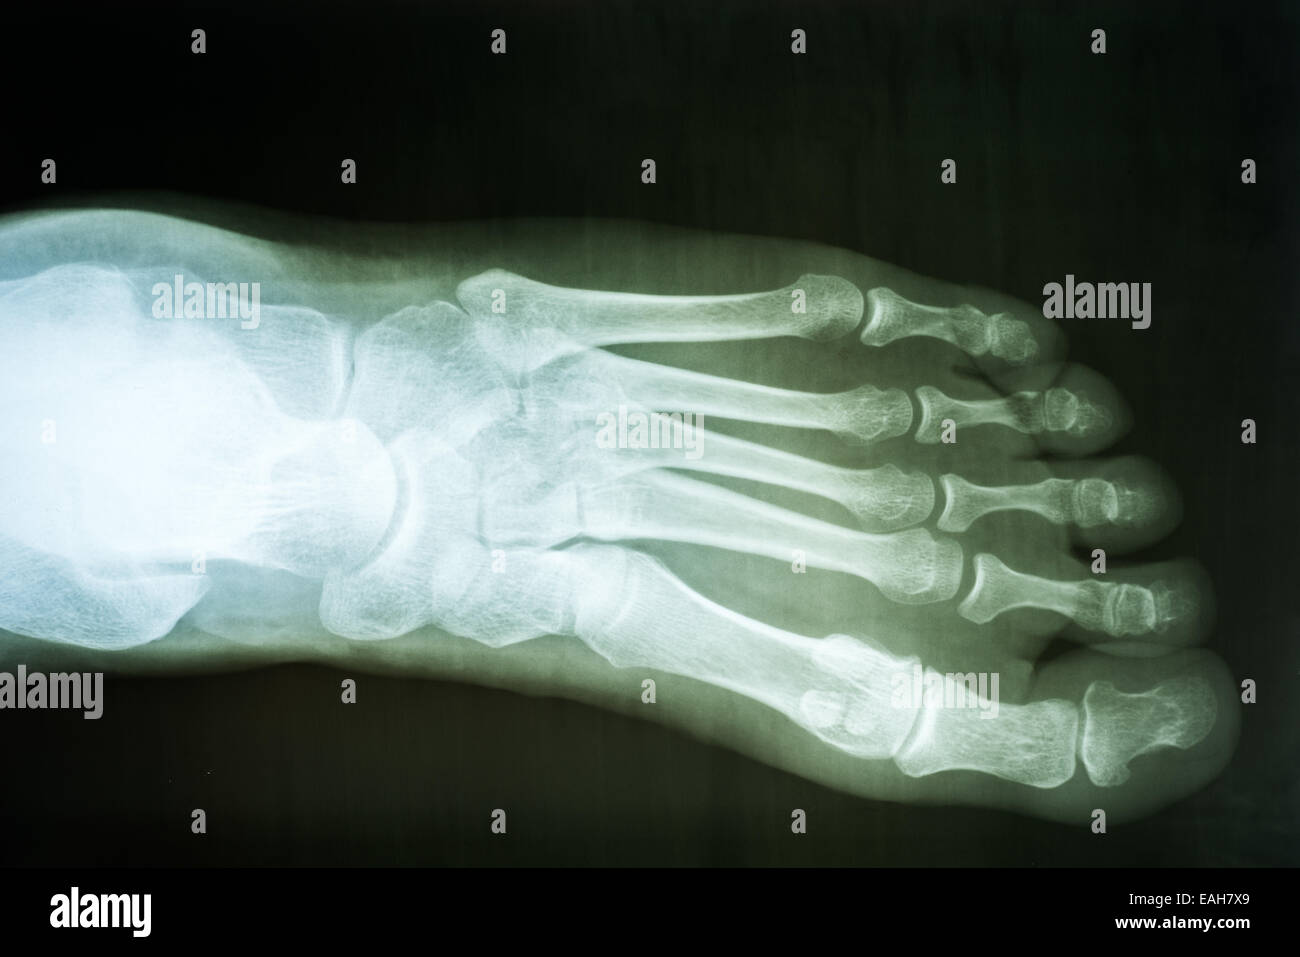 Human Foot X-Ray On Black Background - Stock Image